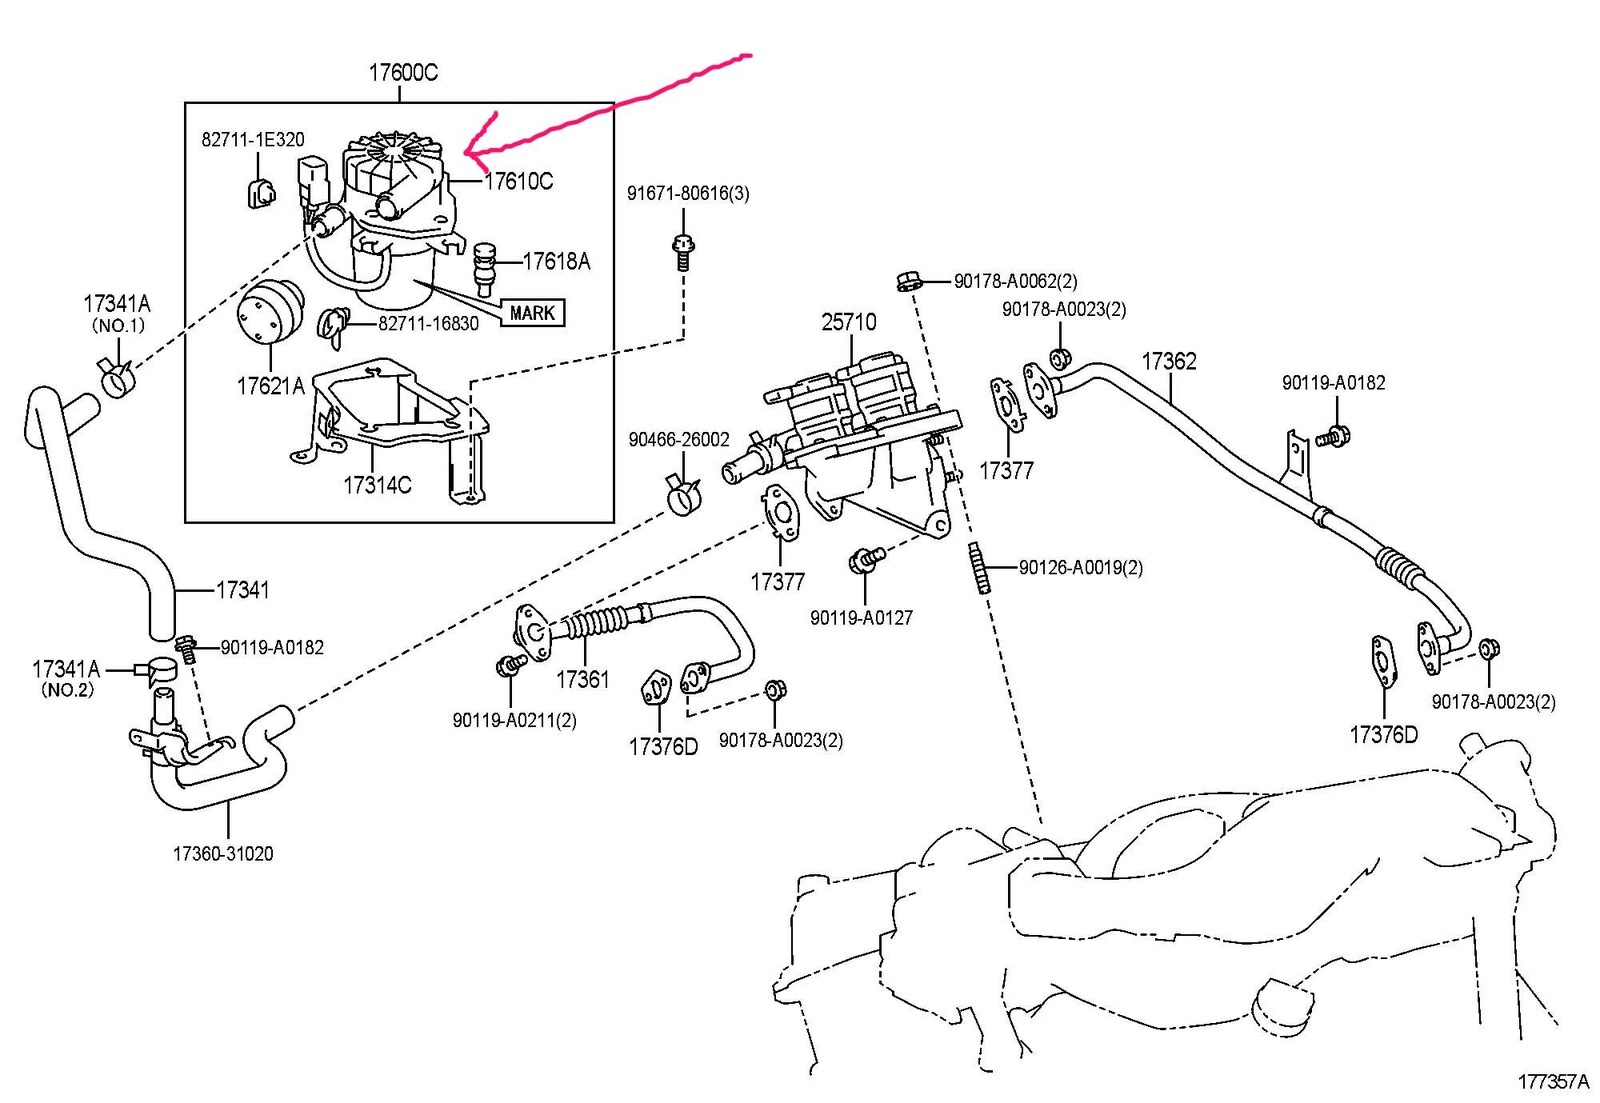 air ride pressure switch wiring diagram 2004 chevy silverado front suspension installation ge profile microwave parts 2012 toyota tacoma imageresizertool com